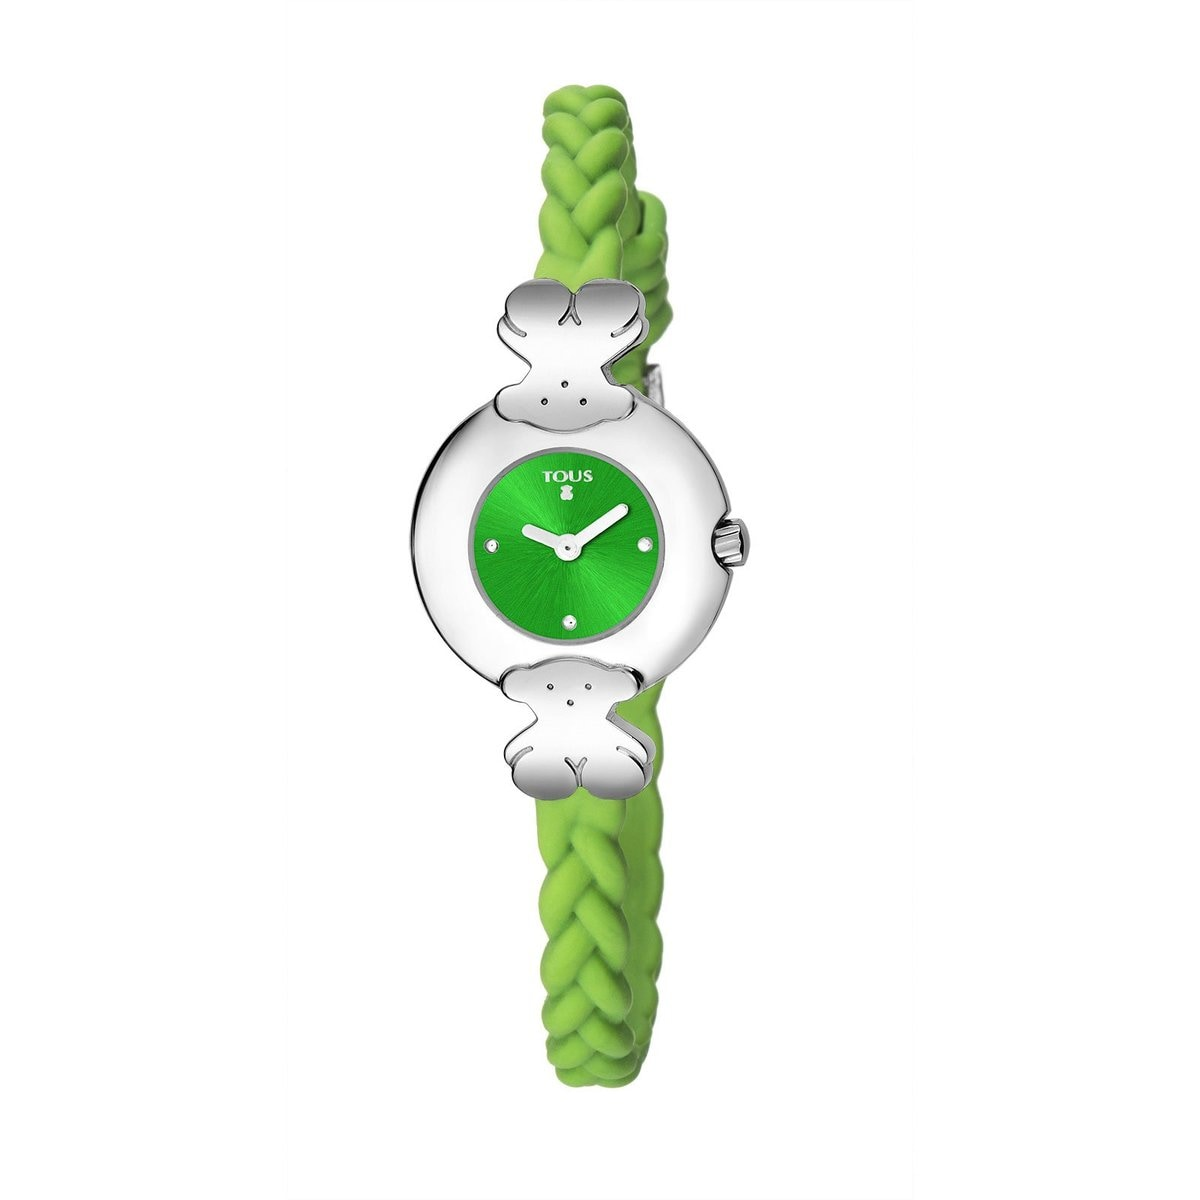 Steel Très Chic Watch with green Silicone strap